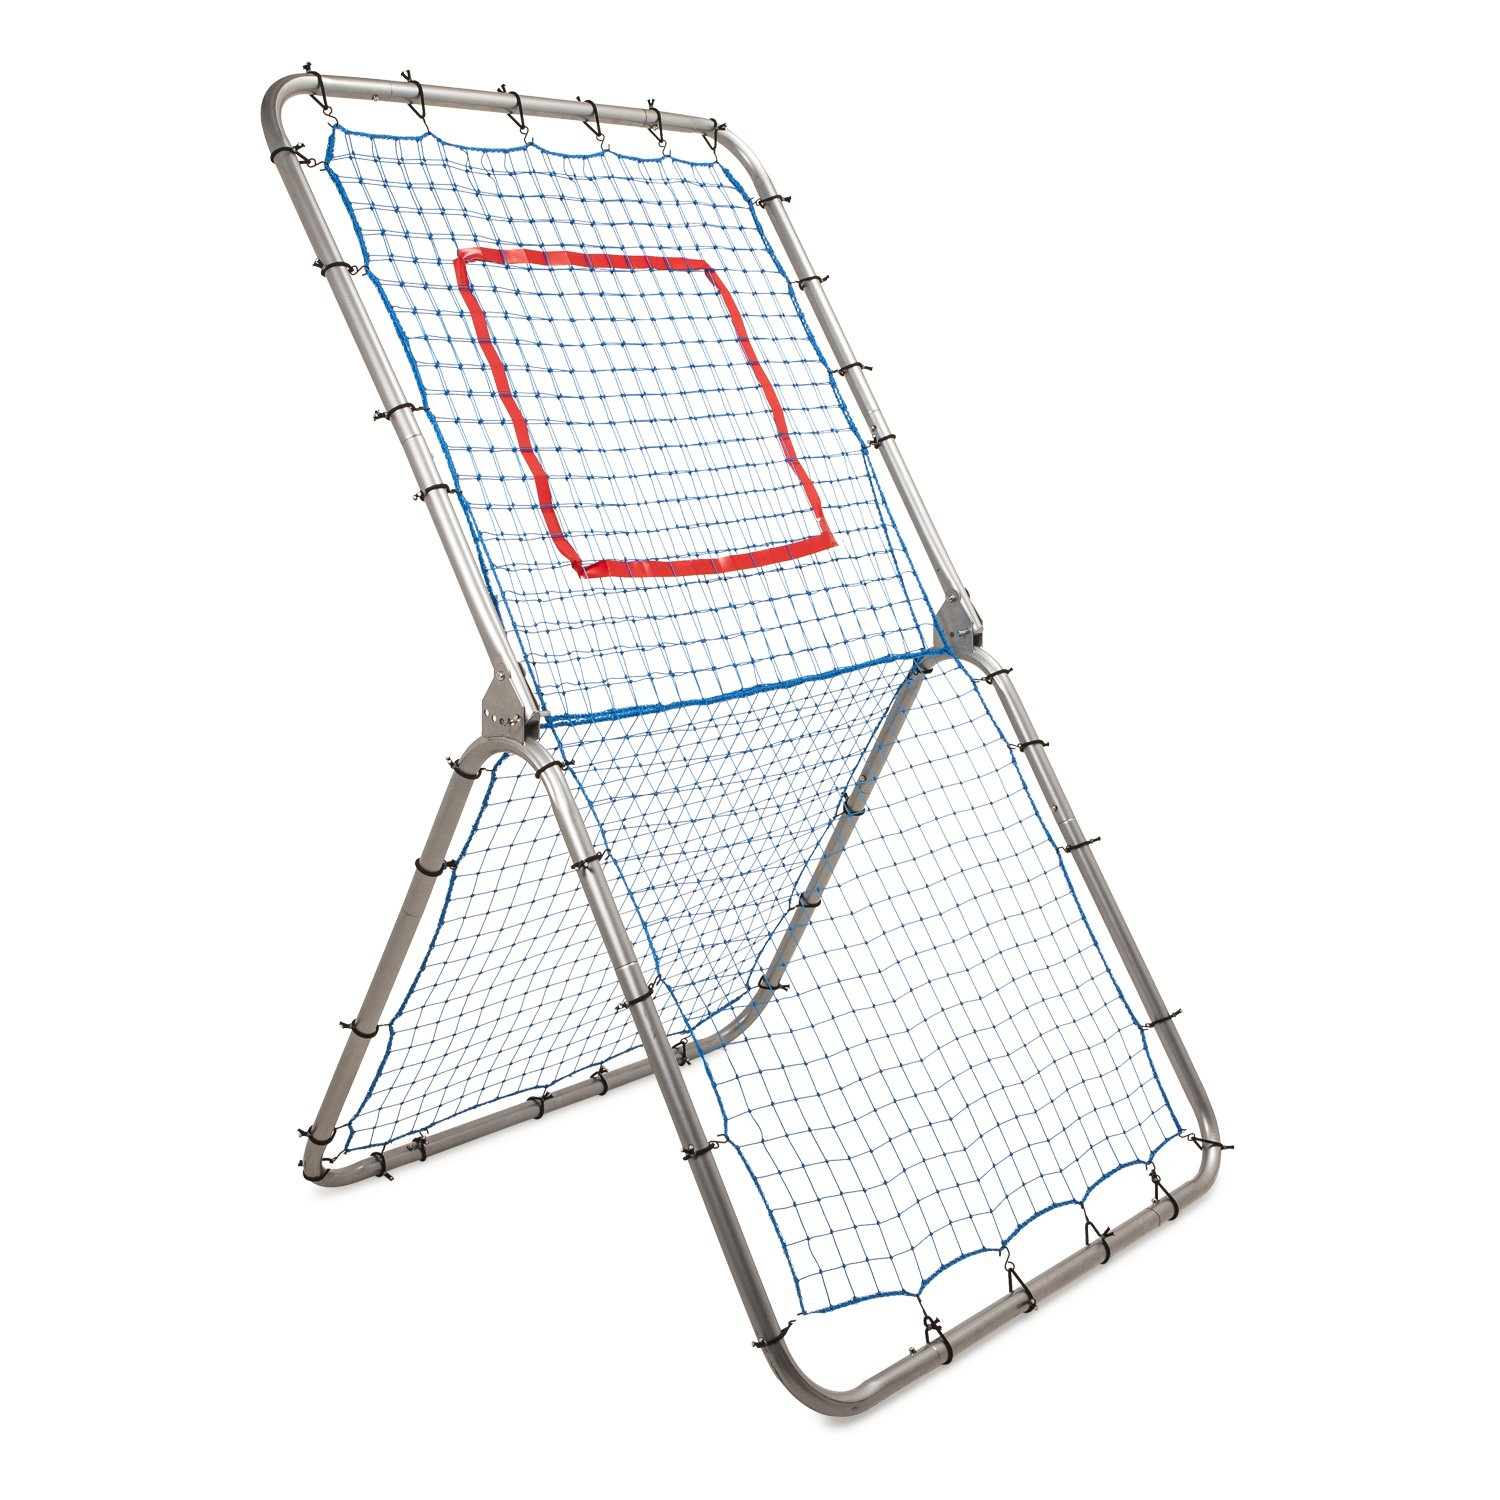 Champion Sports Rebound Pitchback Net: Adjustable Training Practice Rebounder Bounceback Screen for Baseball, Softball, Lacrosse, Soccer, Basketball by Champion Sports